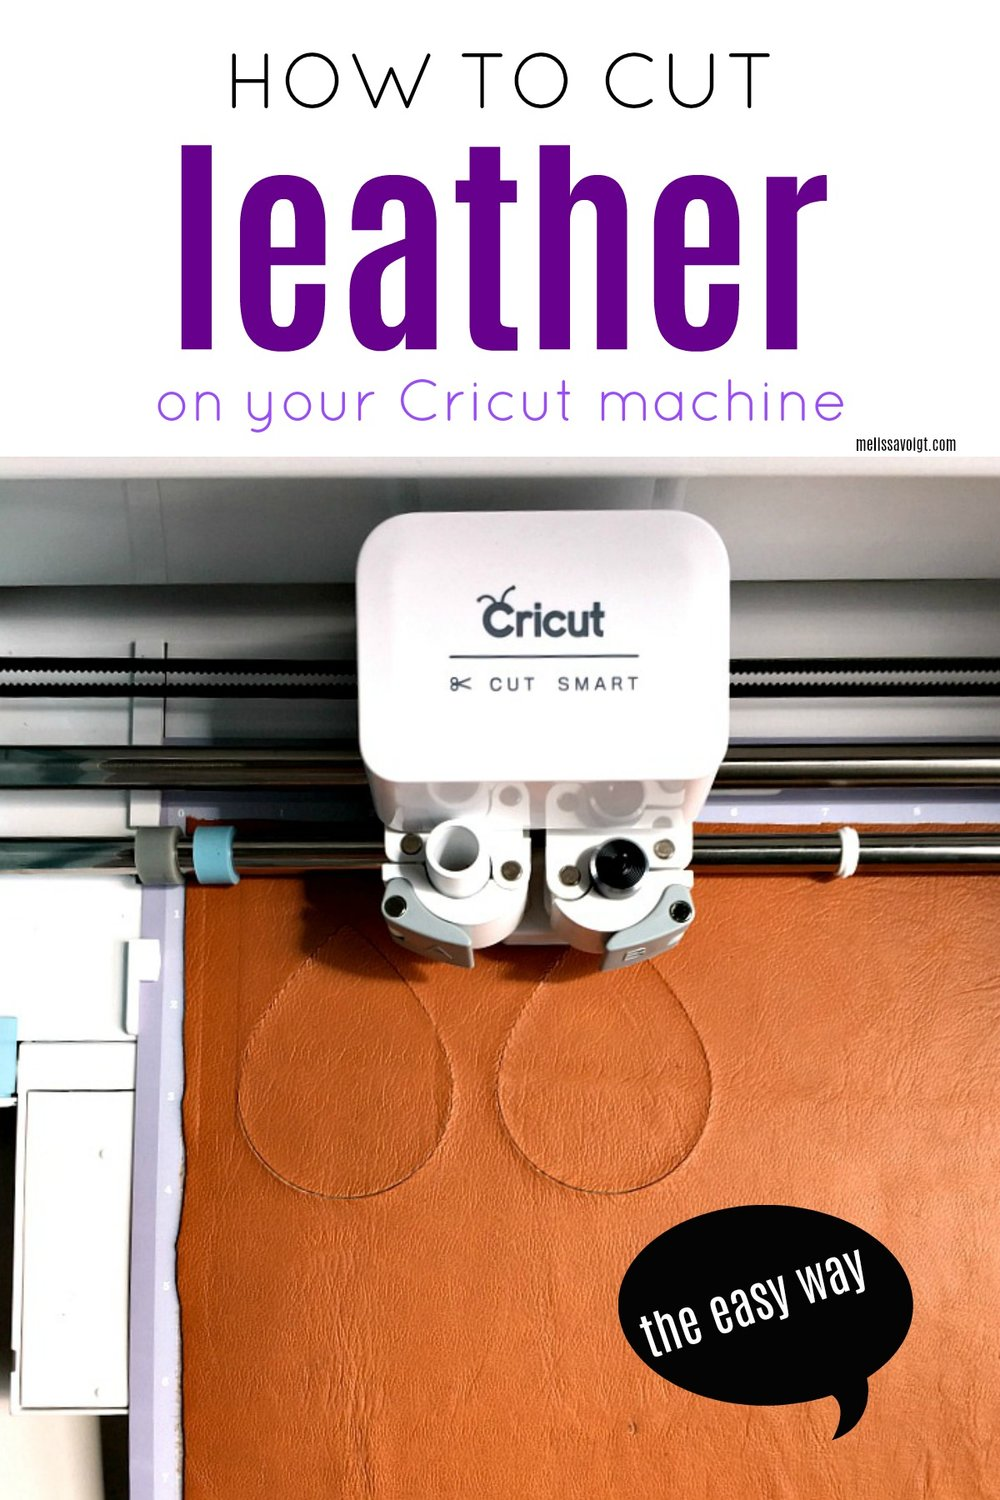 how to cut leather on your cricut 1.jpg